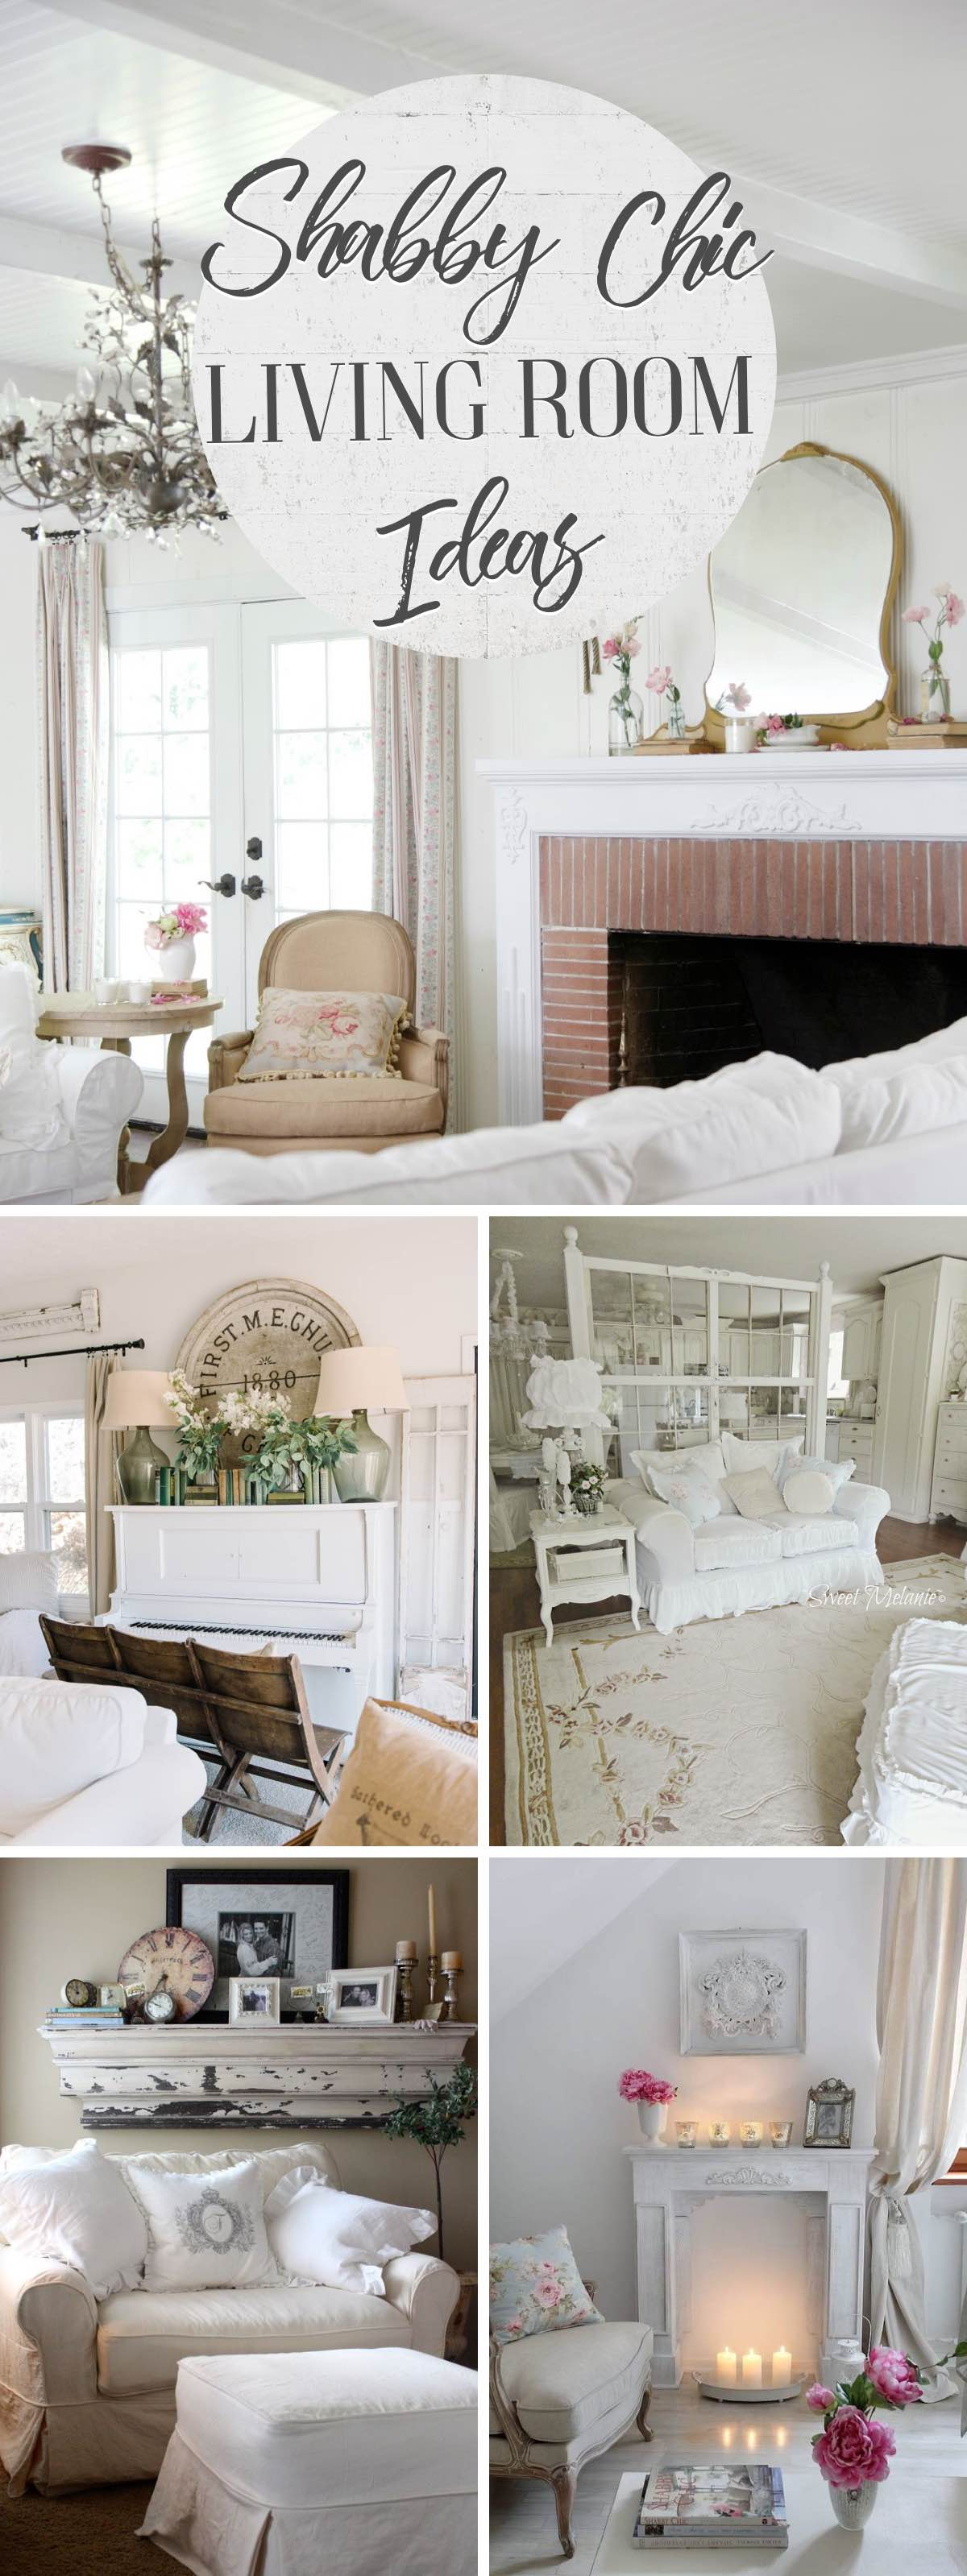 19 Shabby Chic Living Room Ideas That Will Totally Melt Your ...